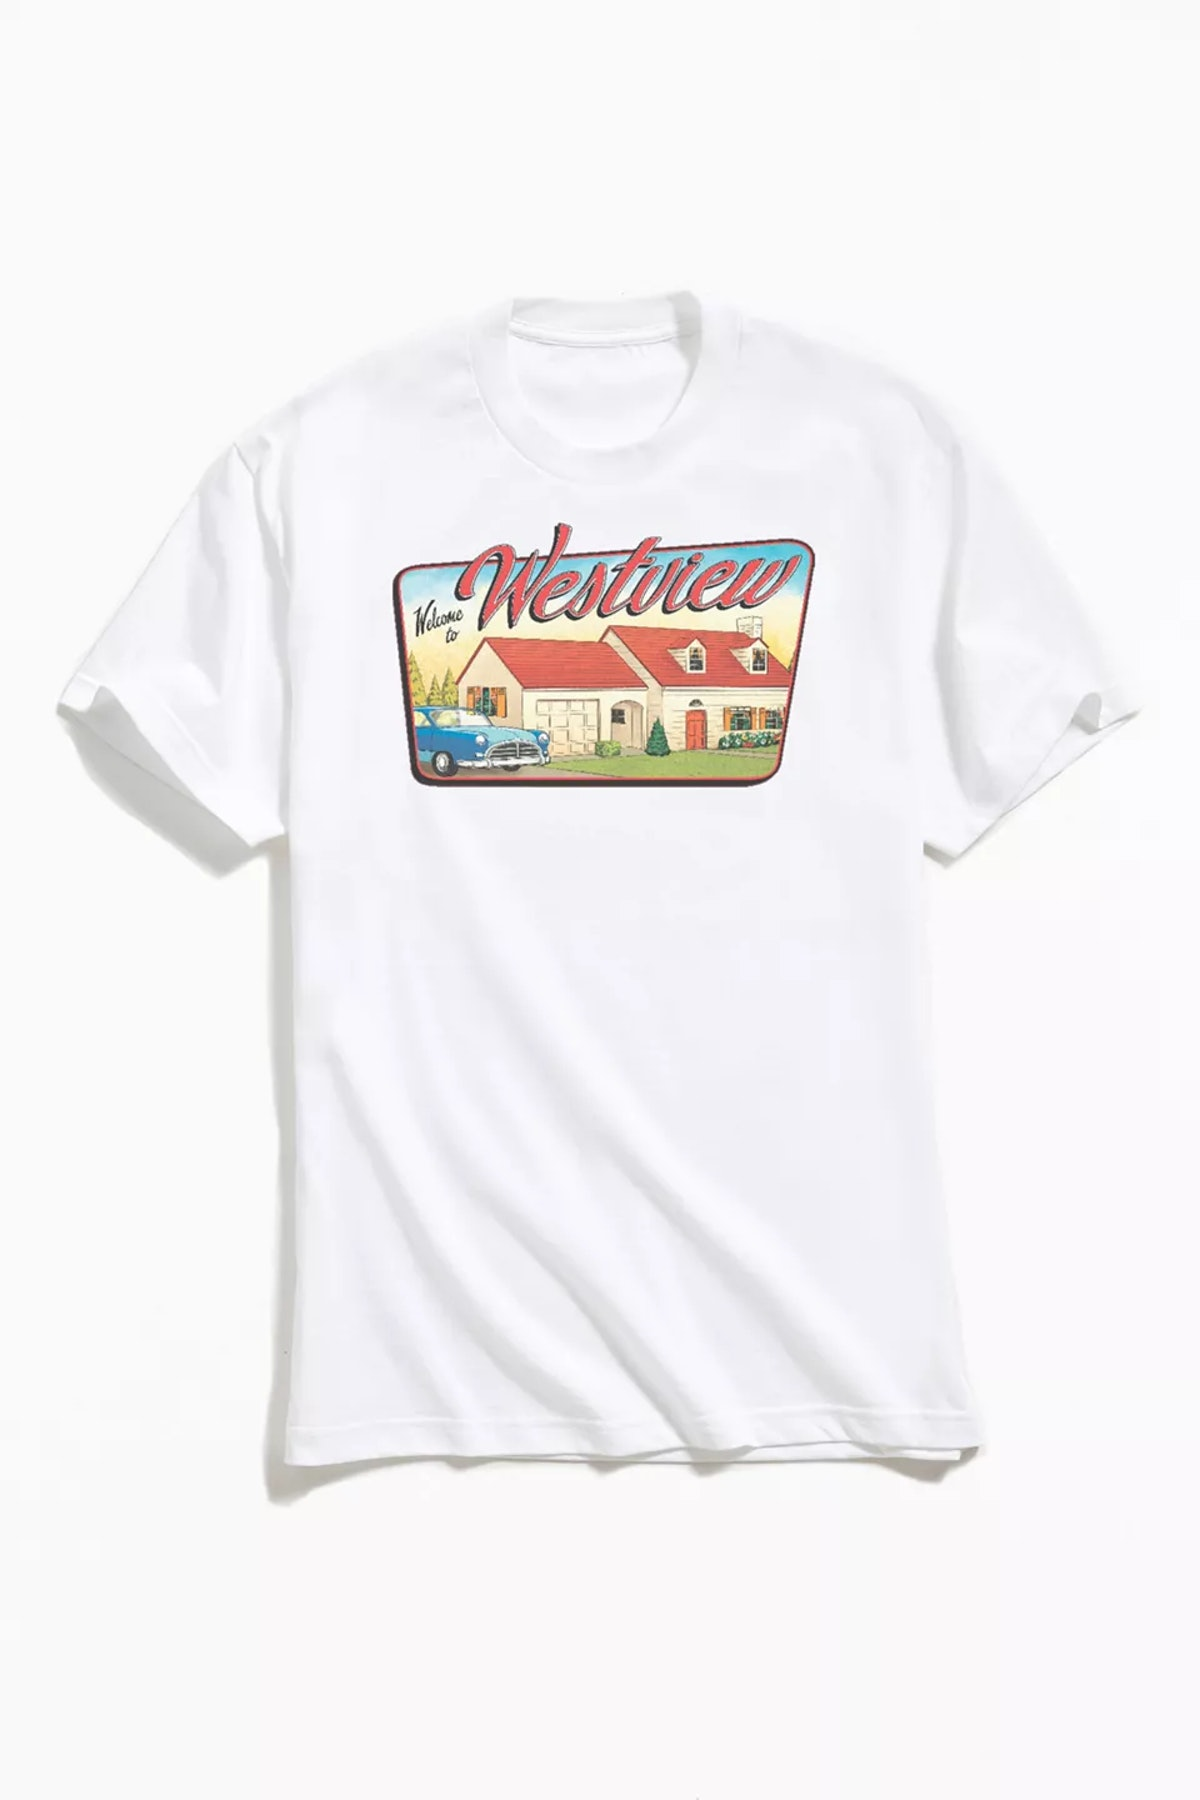 Urban Outfitters WandaVision Welcome To Westview Sign Tee